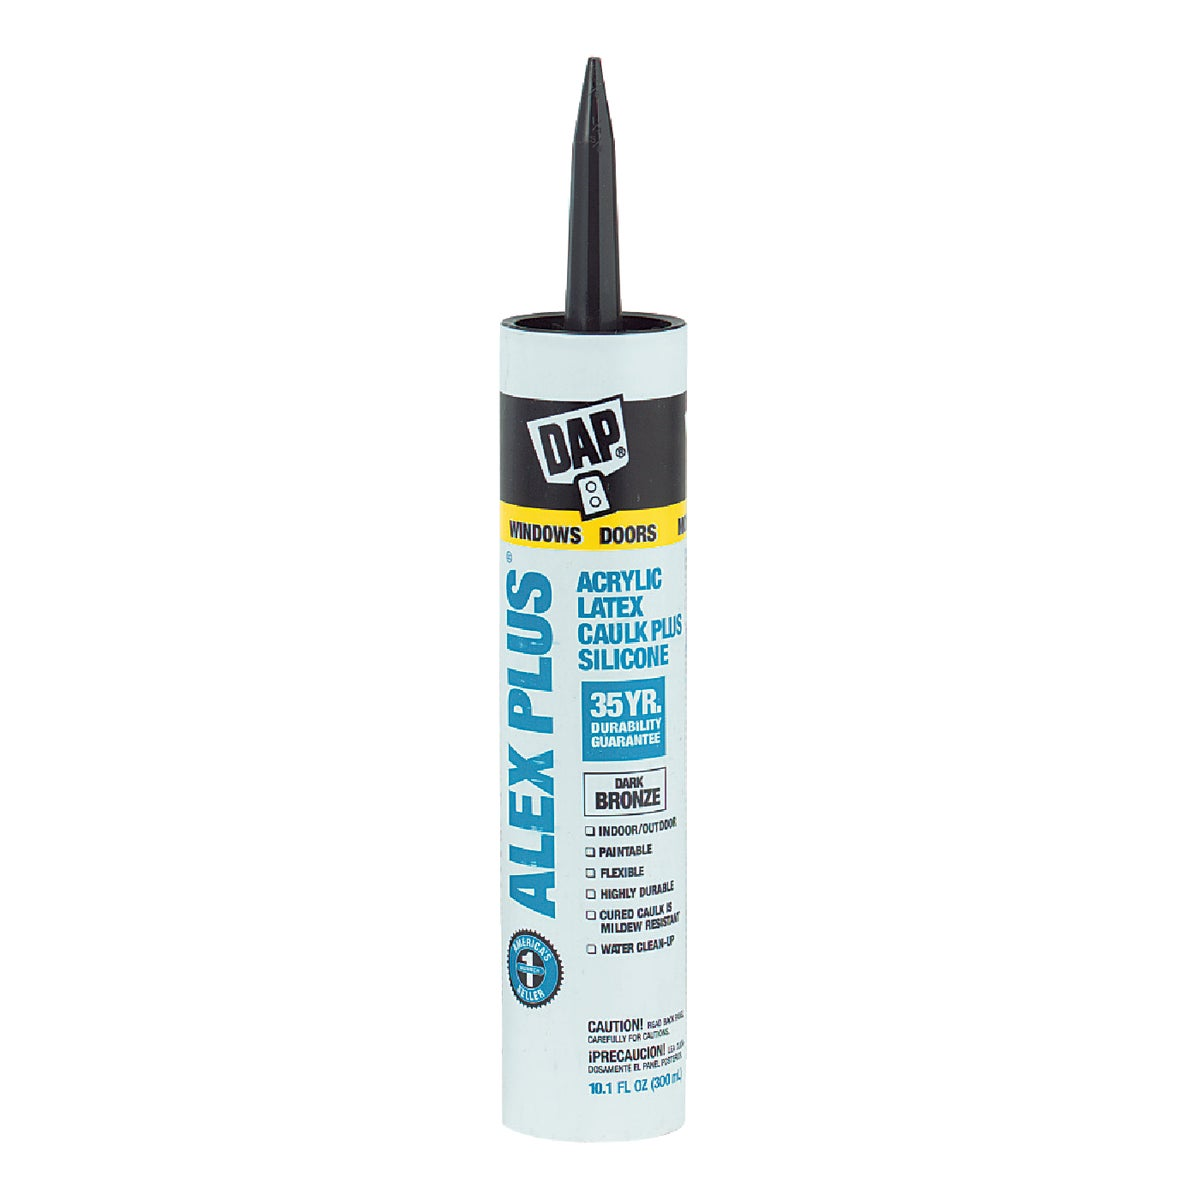 DRK BRZ ALEX PLUS CAULK - 18124 by Dap Inc